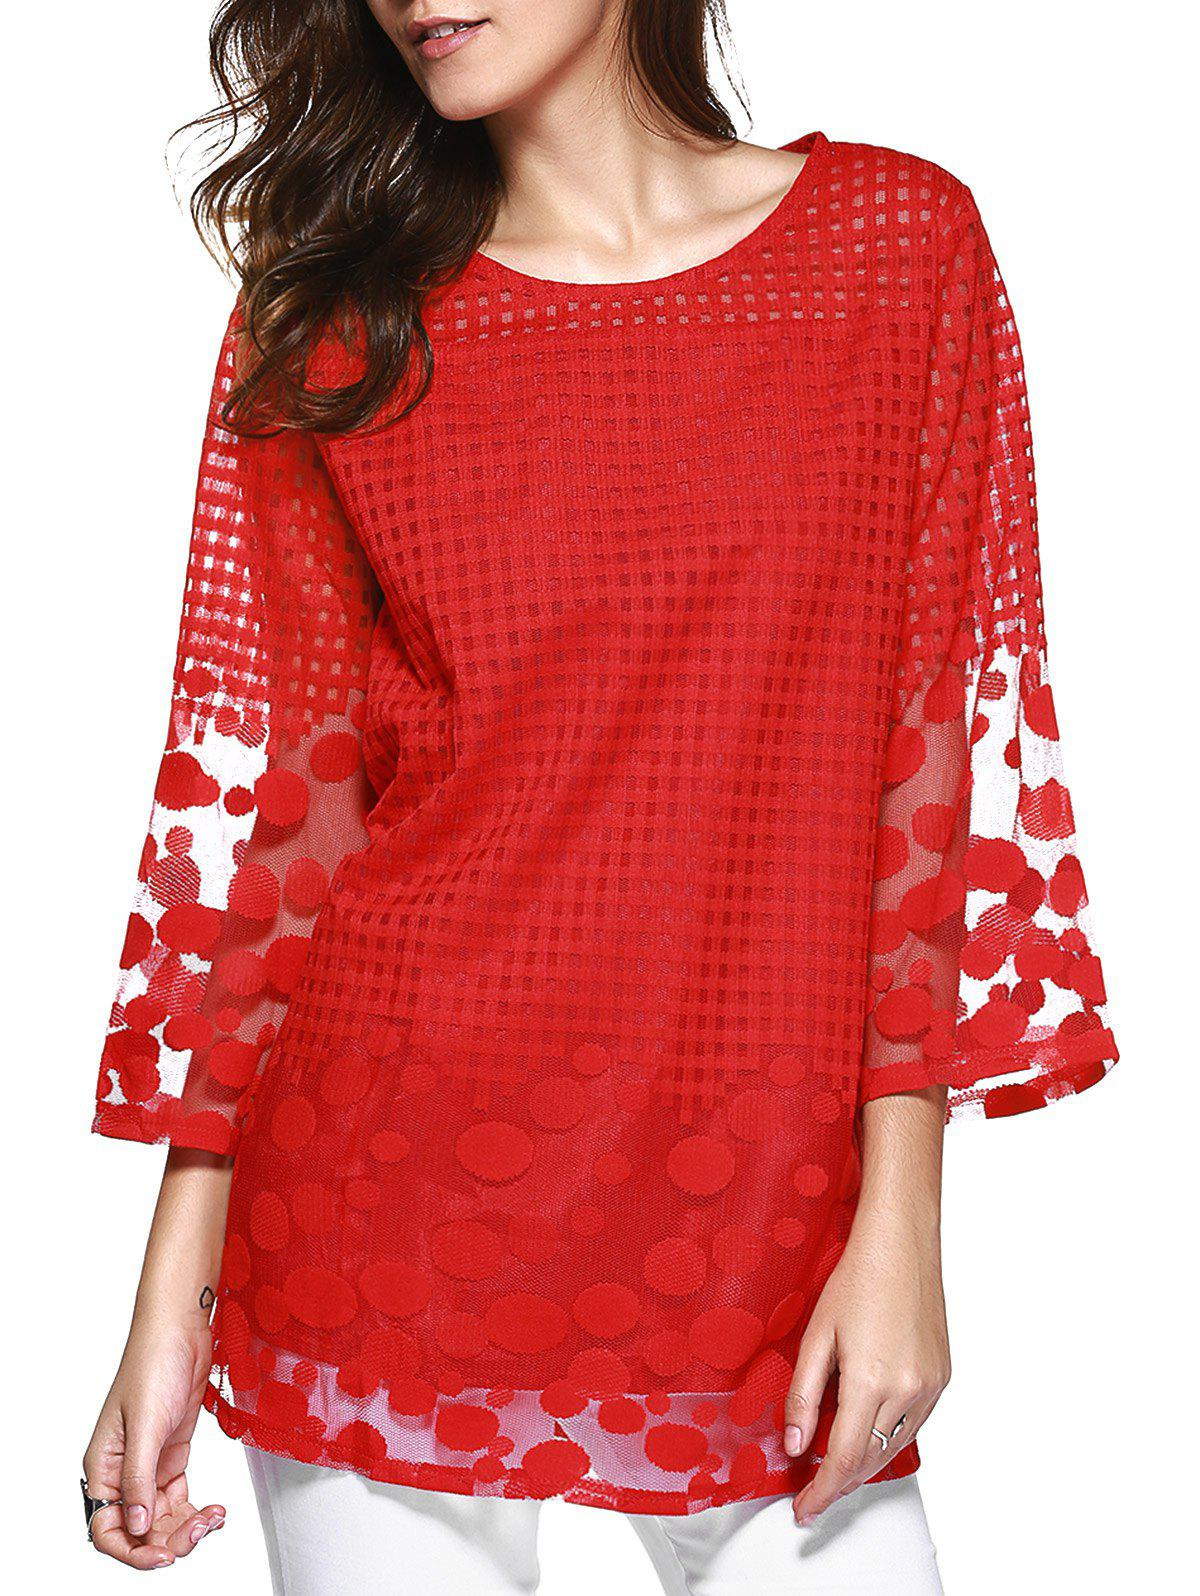 Attractive Plaid Spliced Polka Dot Chiffon Blouse - RED 5XL